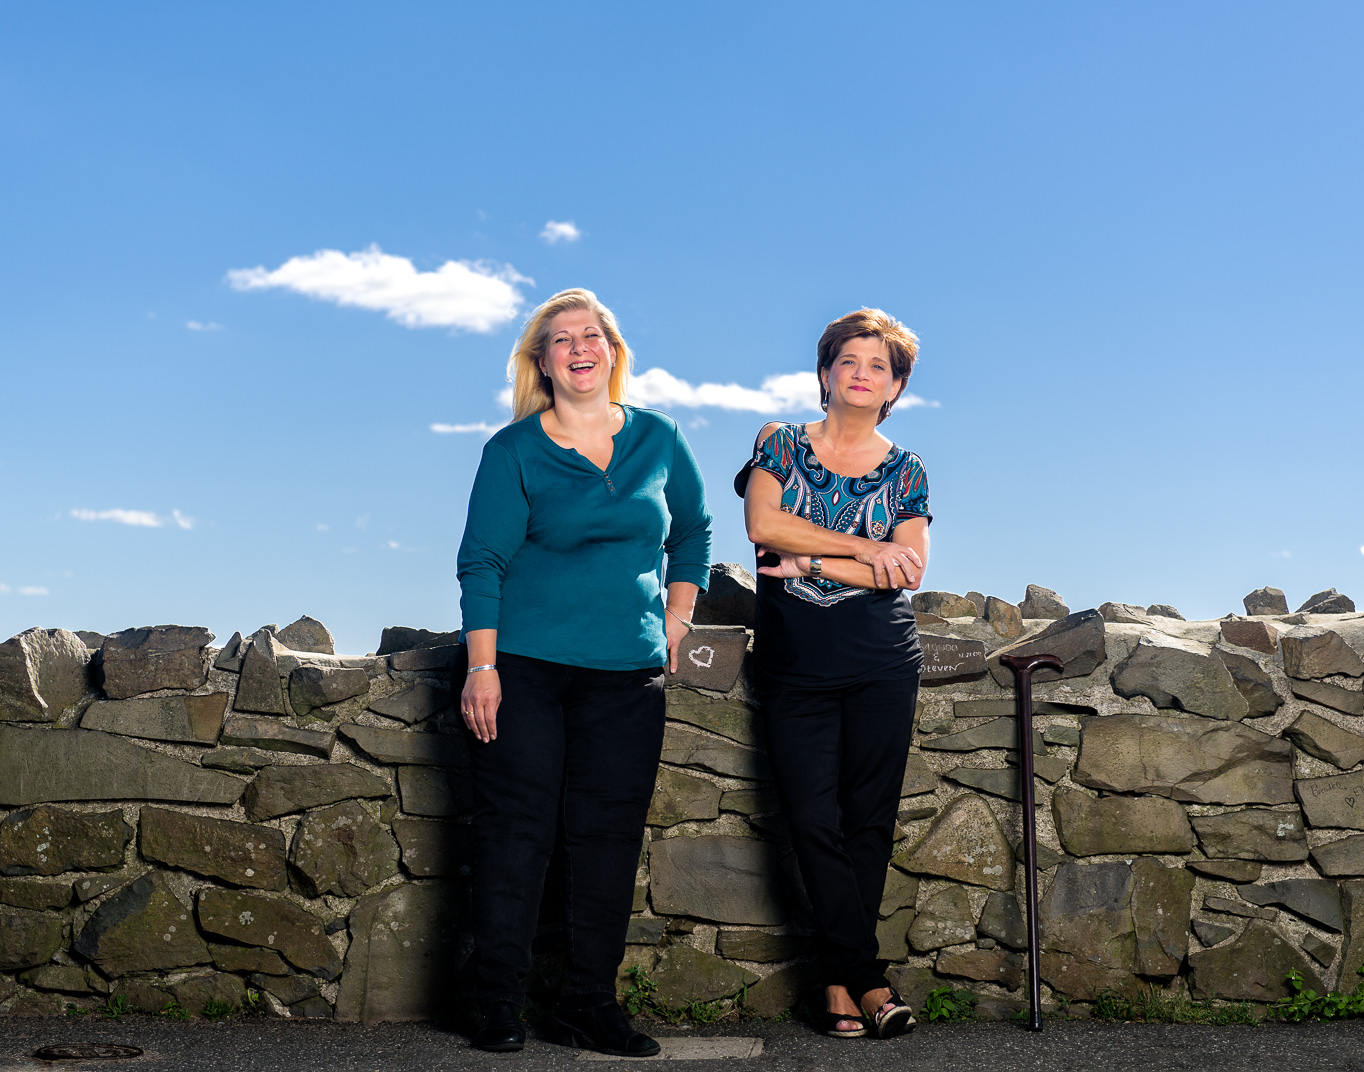 Connecticut woman with Multiple Sclerosis leans on stone wall with her sister